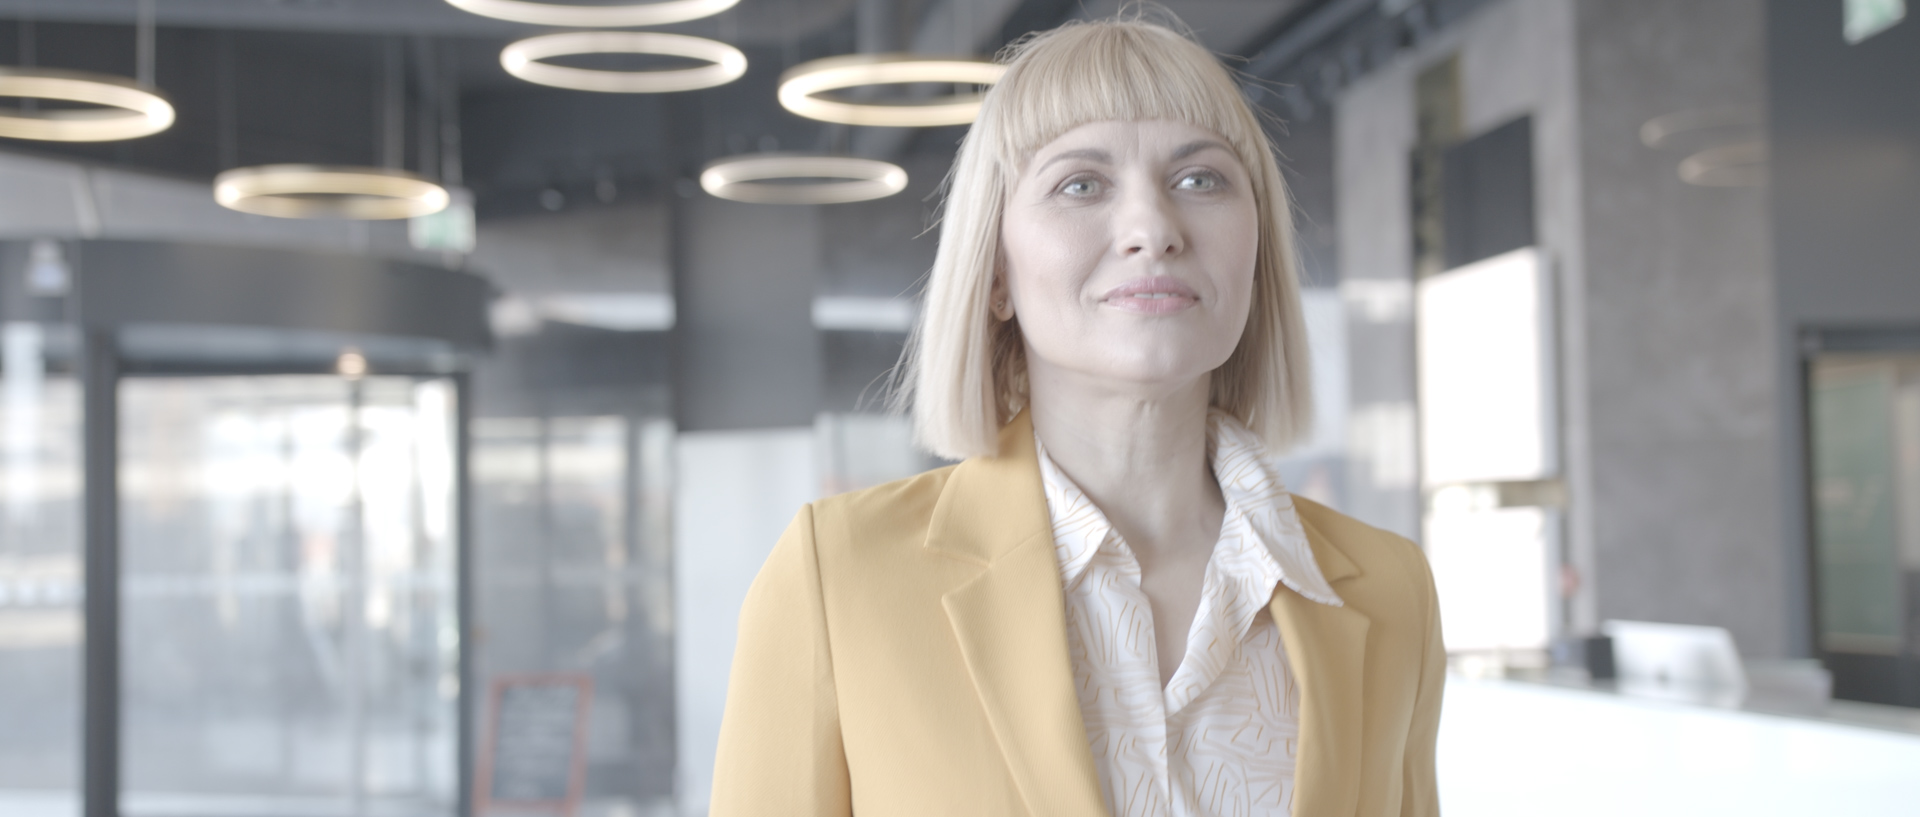 alina ilea actress filming tad james nlp commercial The Right Choice by popotam productions video agency before color grading